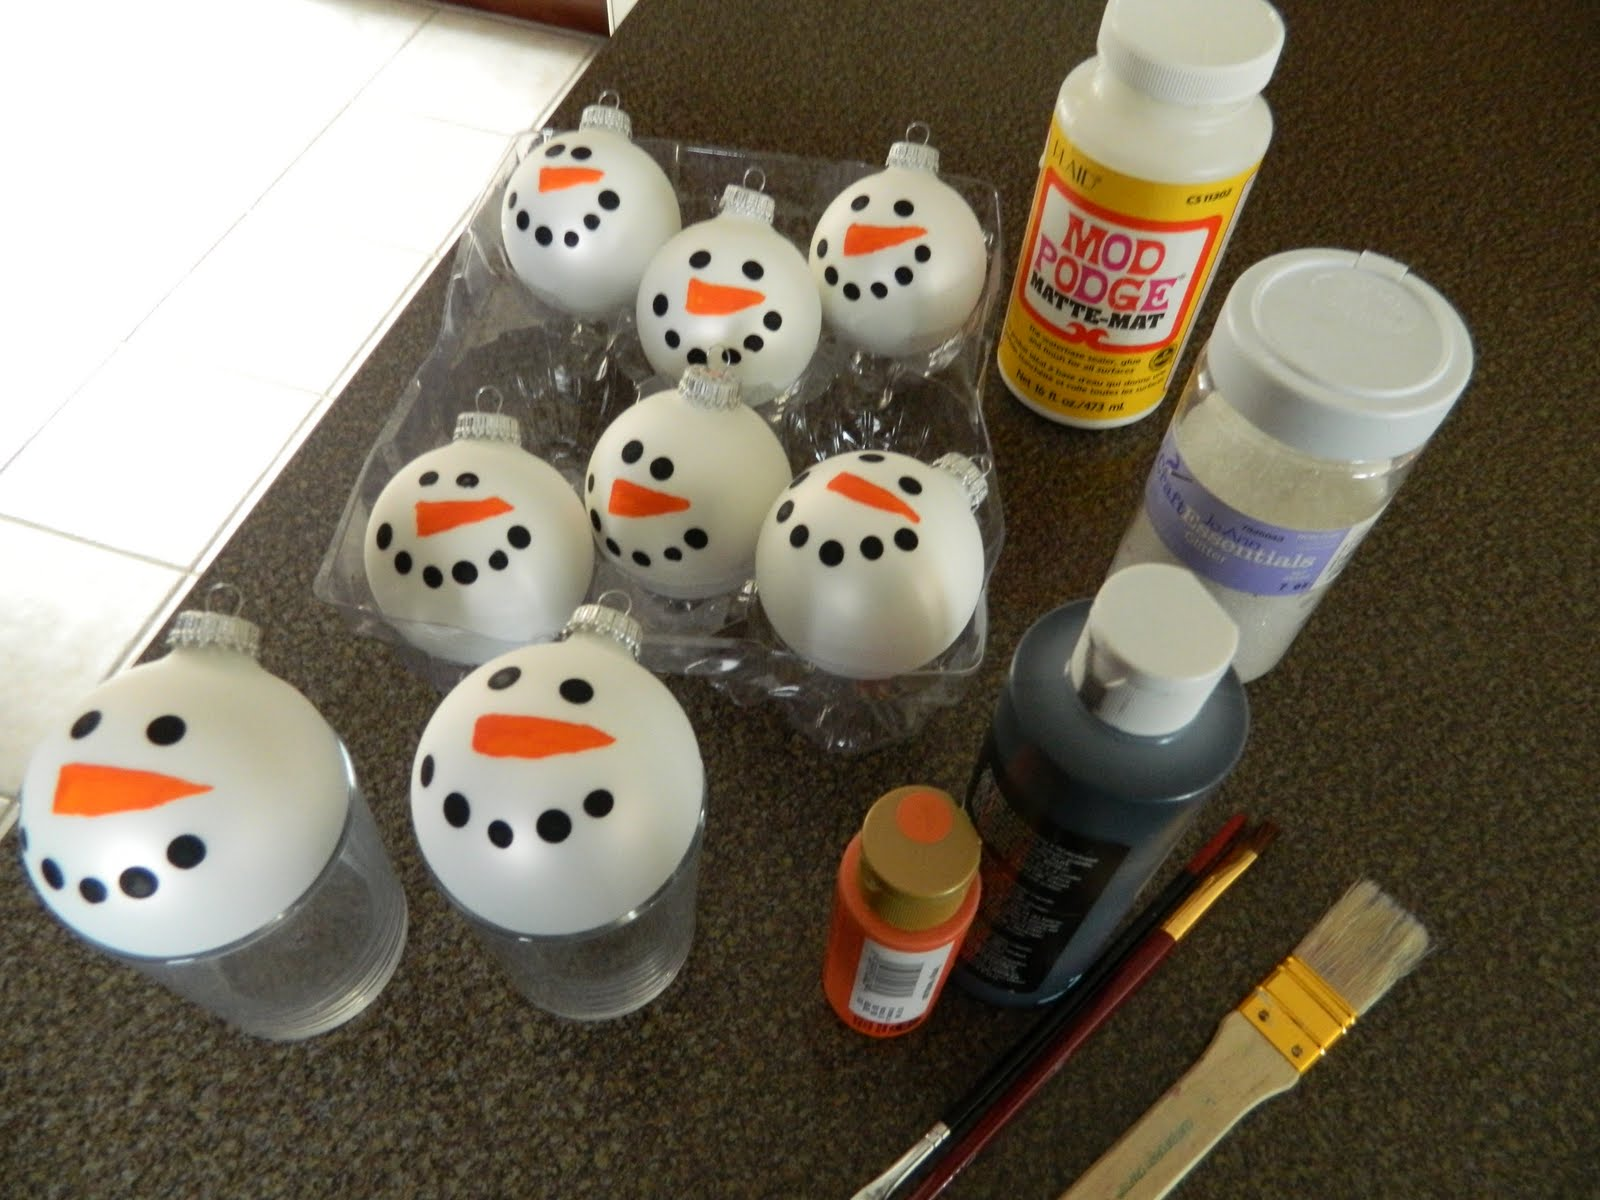 Hobby lobby glass ornaments - All You Need Are White Glass Ball Ornaments Black And Orange Paint Modpodge And White Glitter I Dipped The Eraser End Of A Pencil In Black Paint To Make